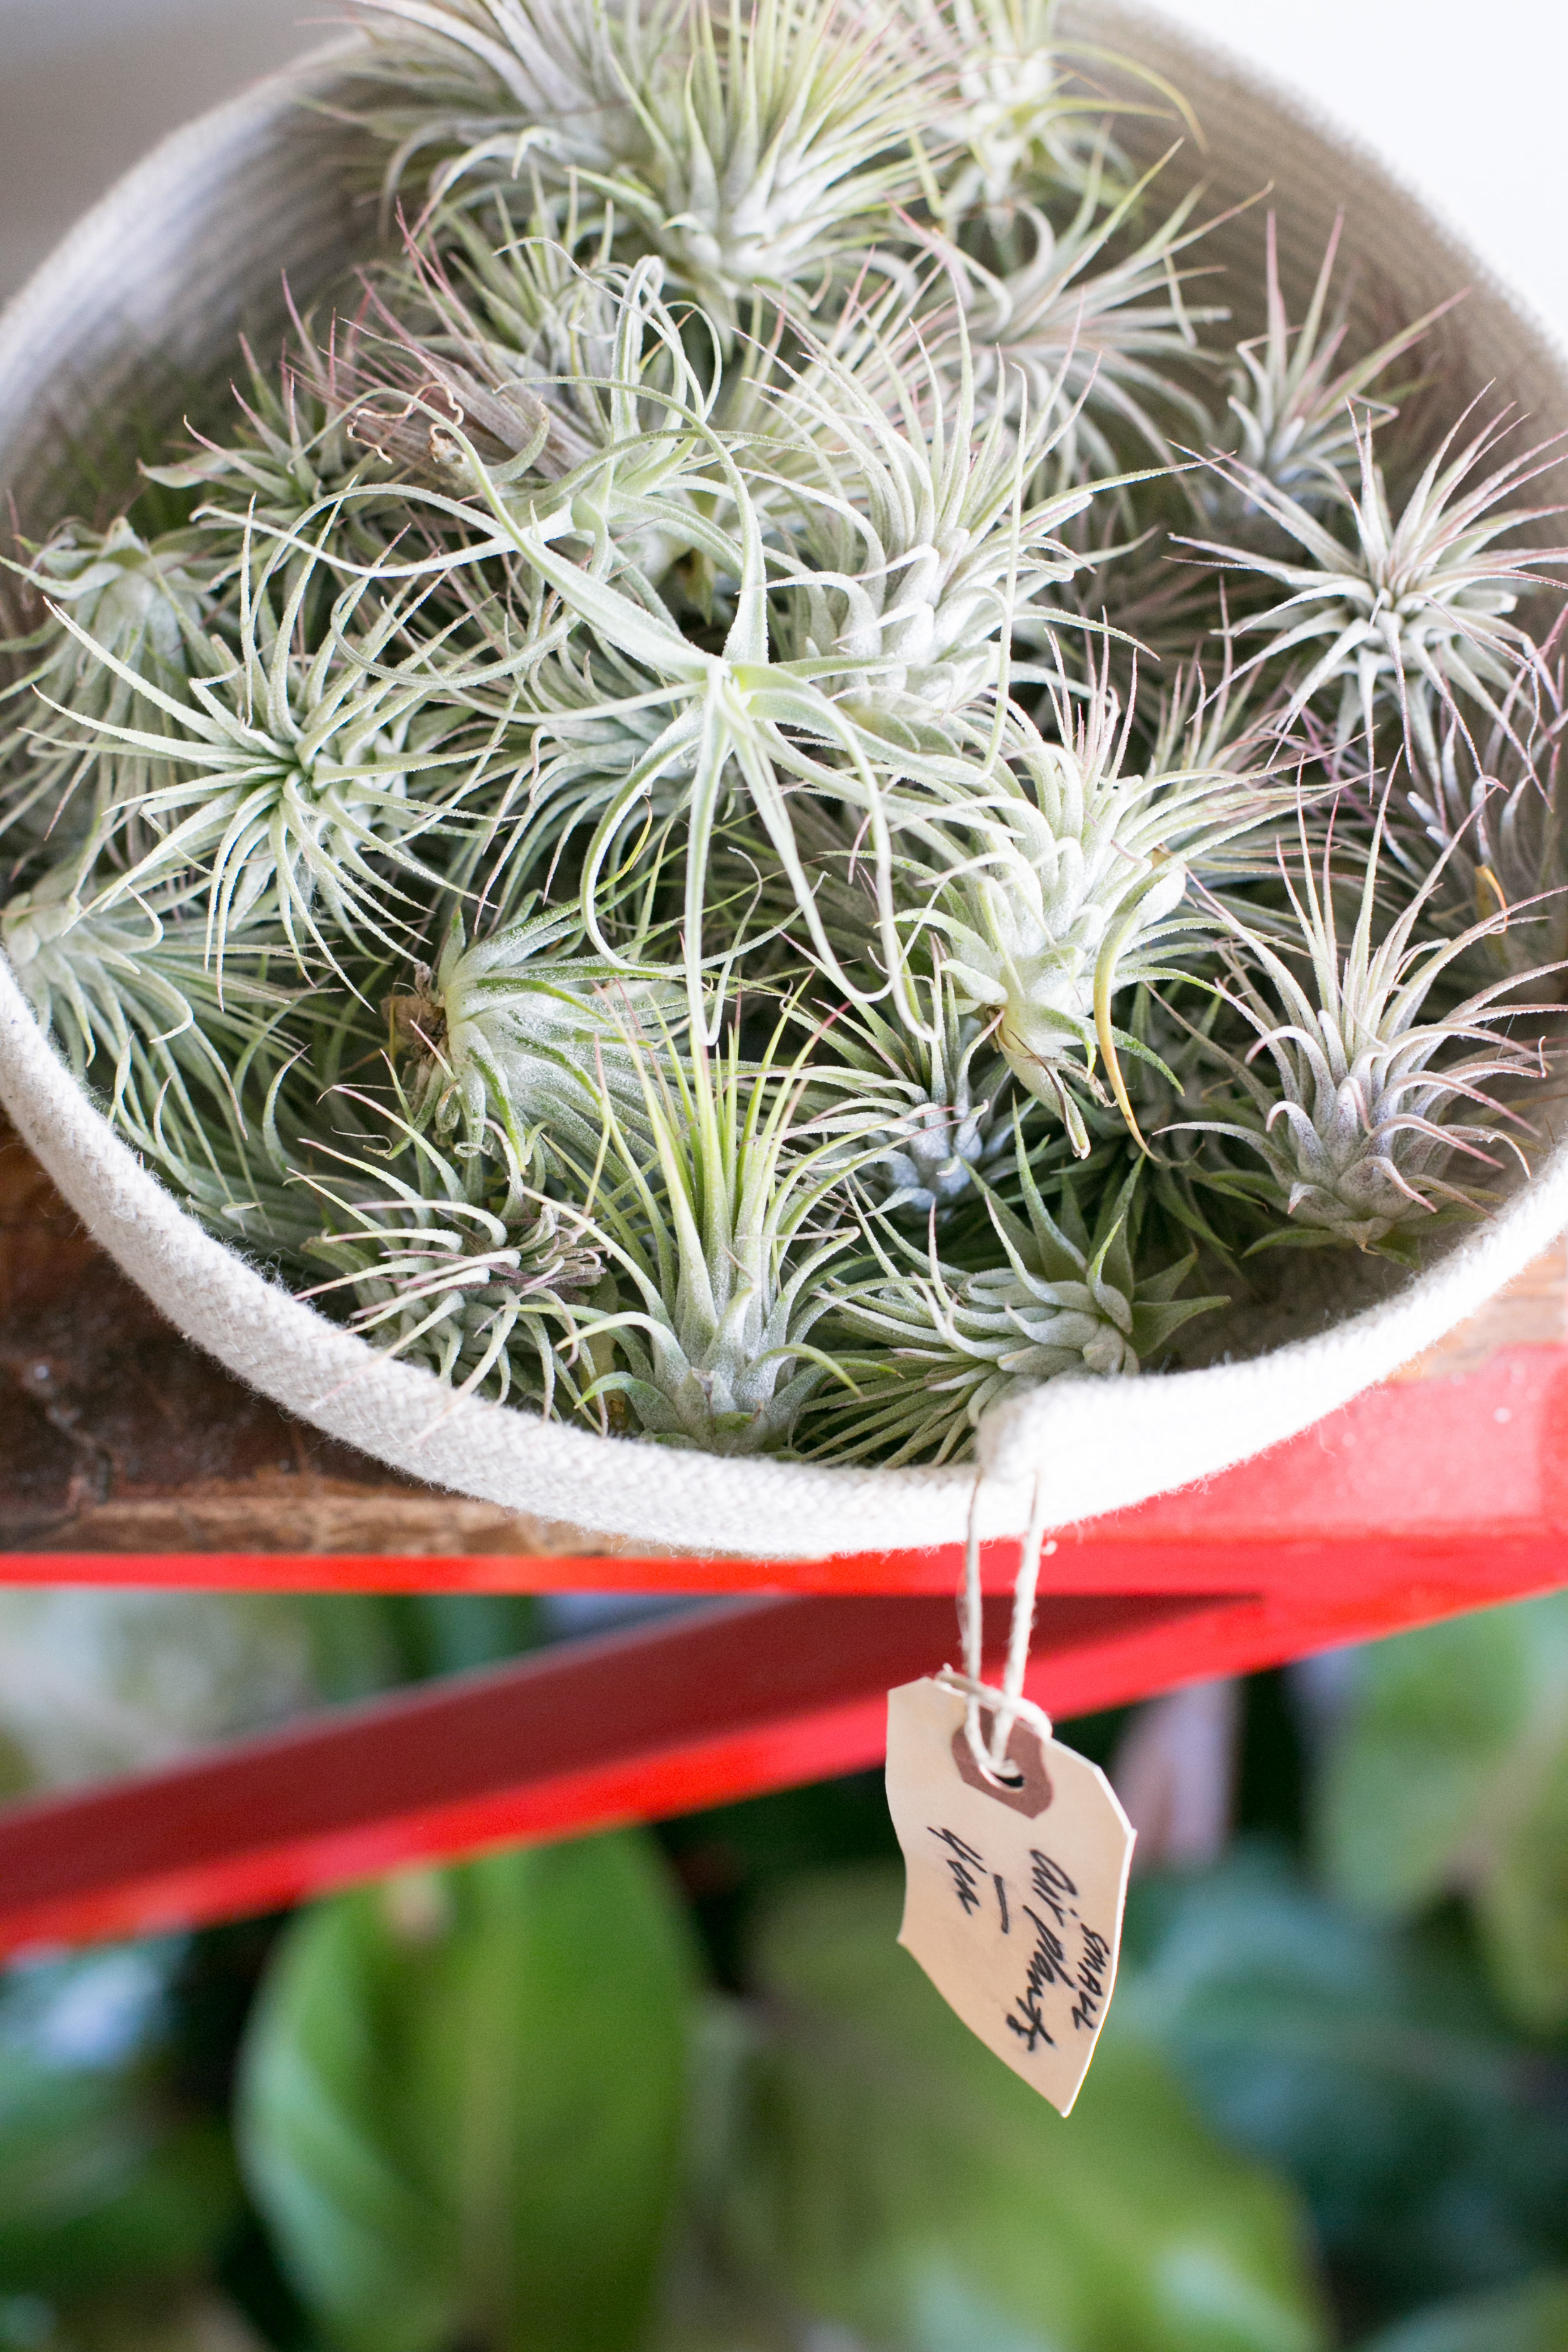 You can treat your air plants like tropicals; they enjoy high humidity and indirect light and are ideal for a bathroom or shaded porch in summer.